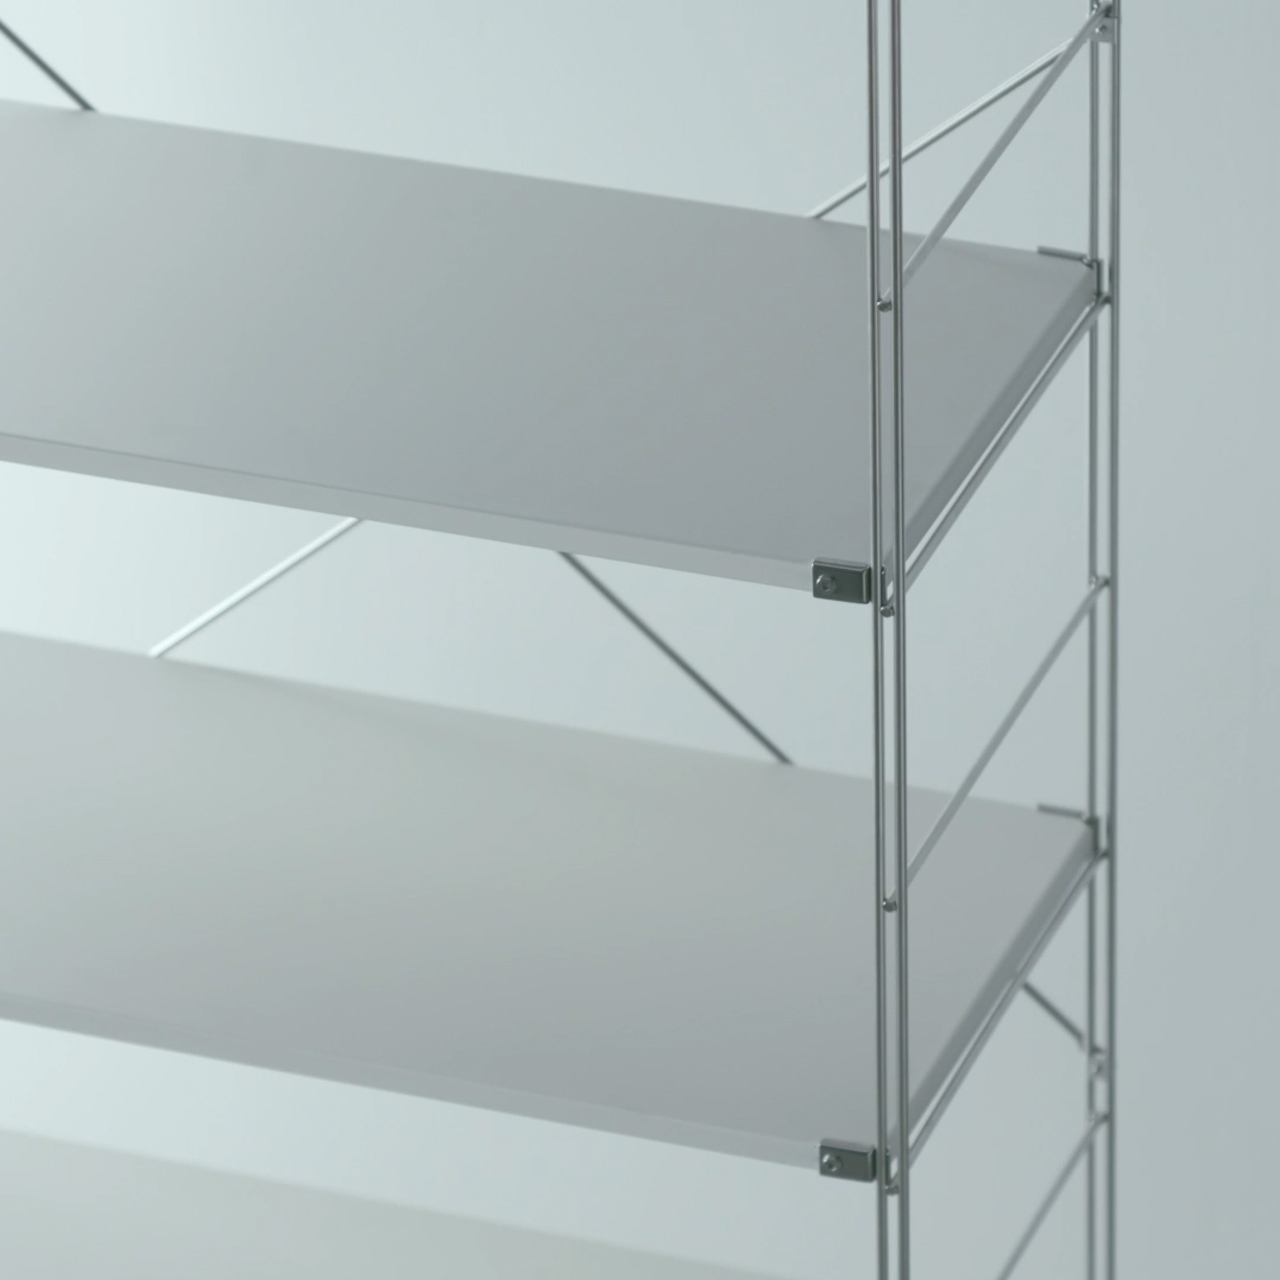 Stainless Steel Shelves Frames Are Available In Steel And Stainless Steel Unit Shelf